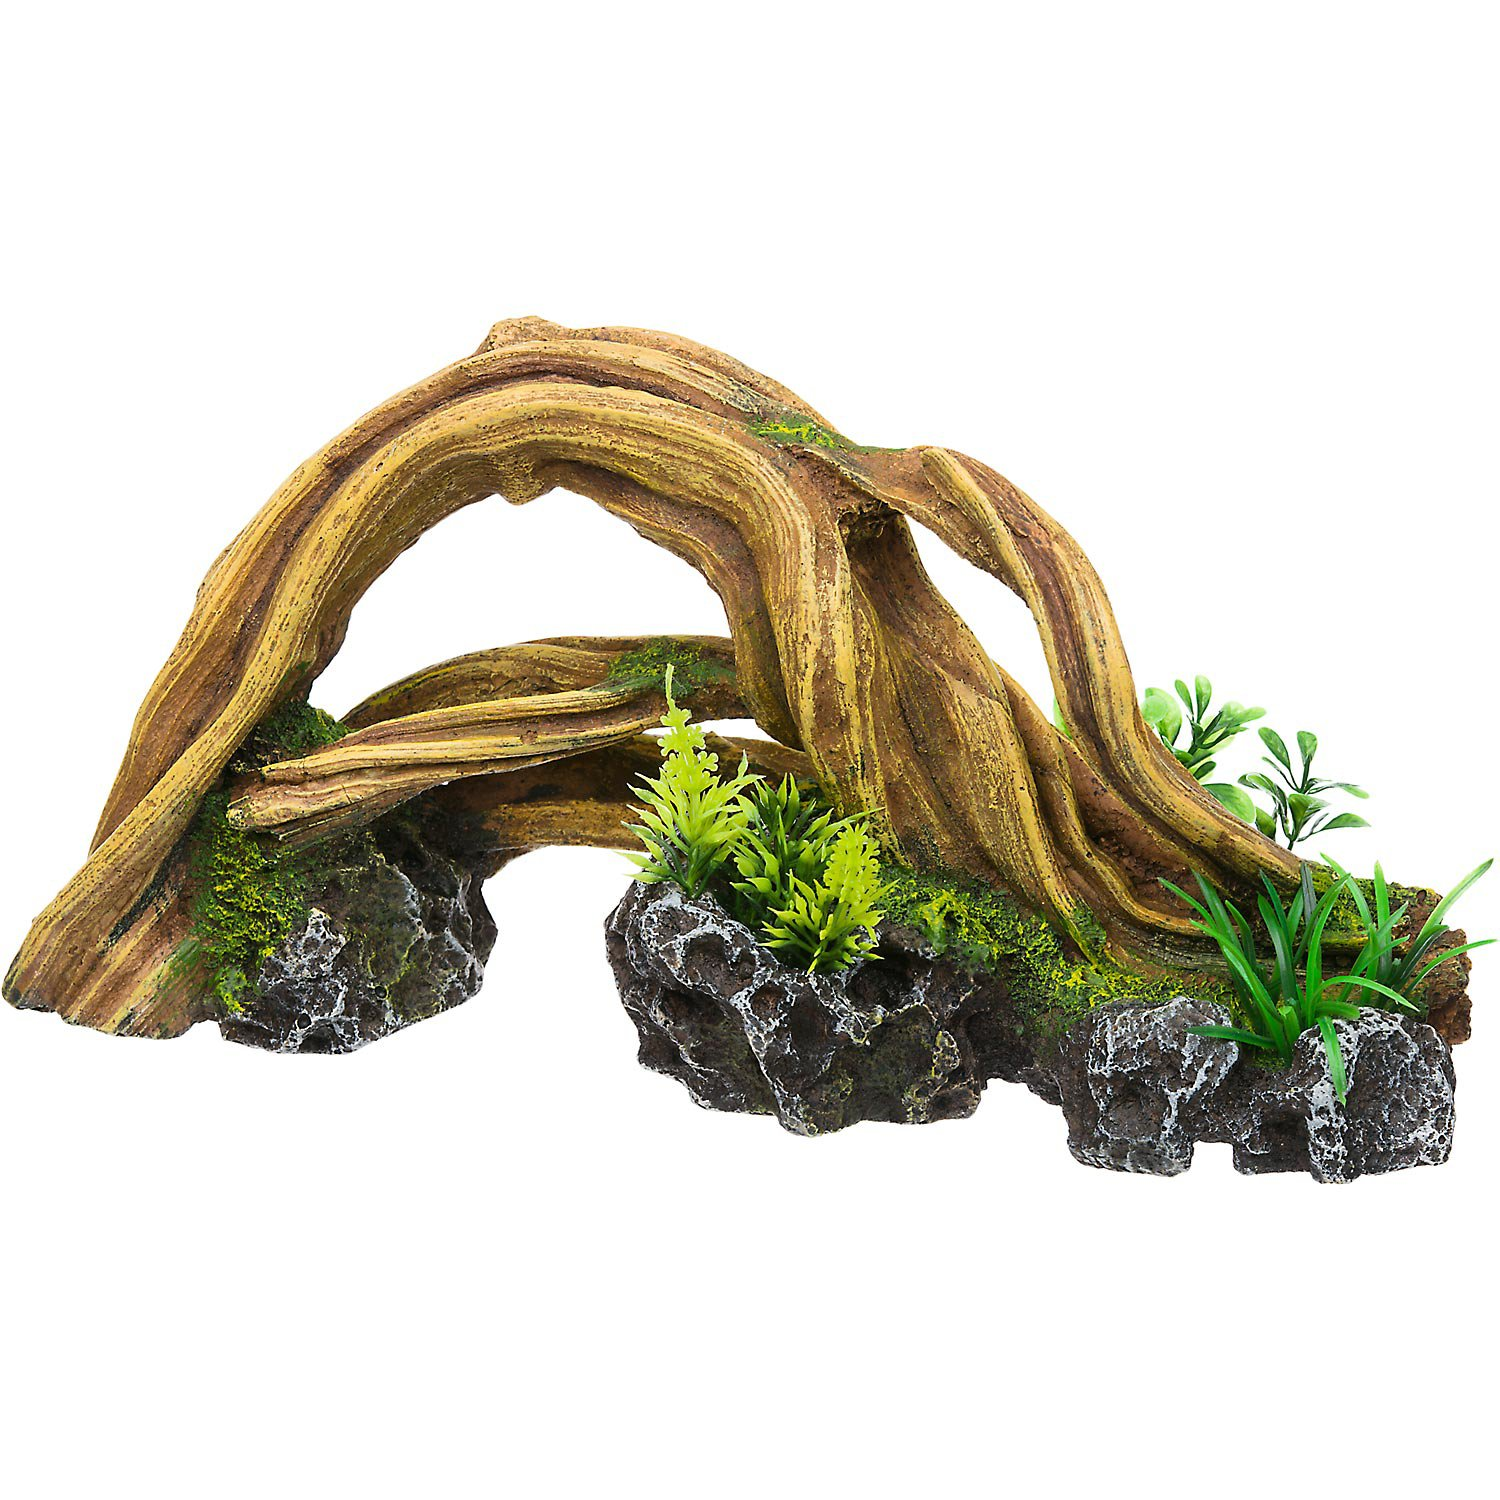 RockGarden Resin Wood Arch with Plants